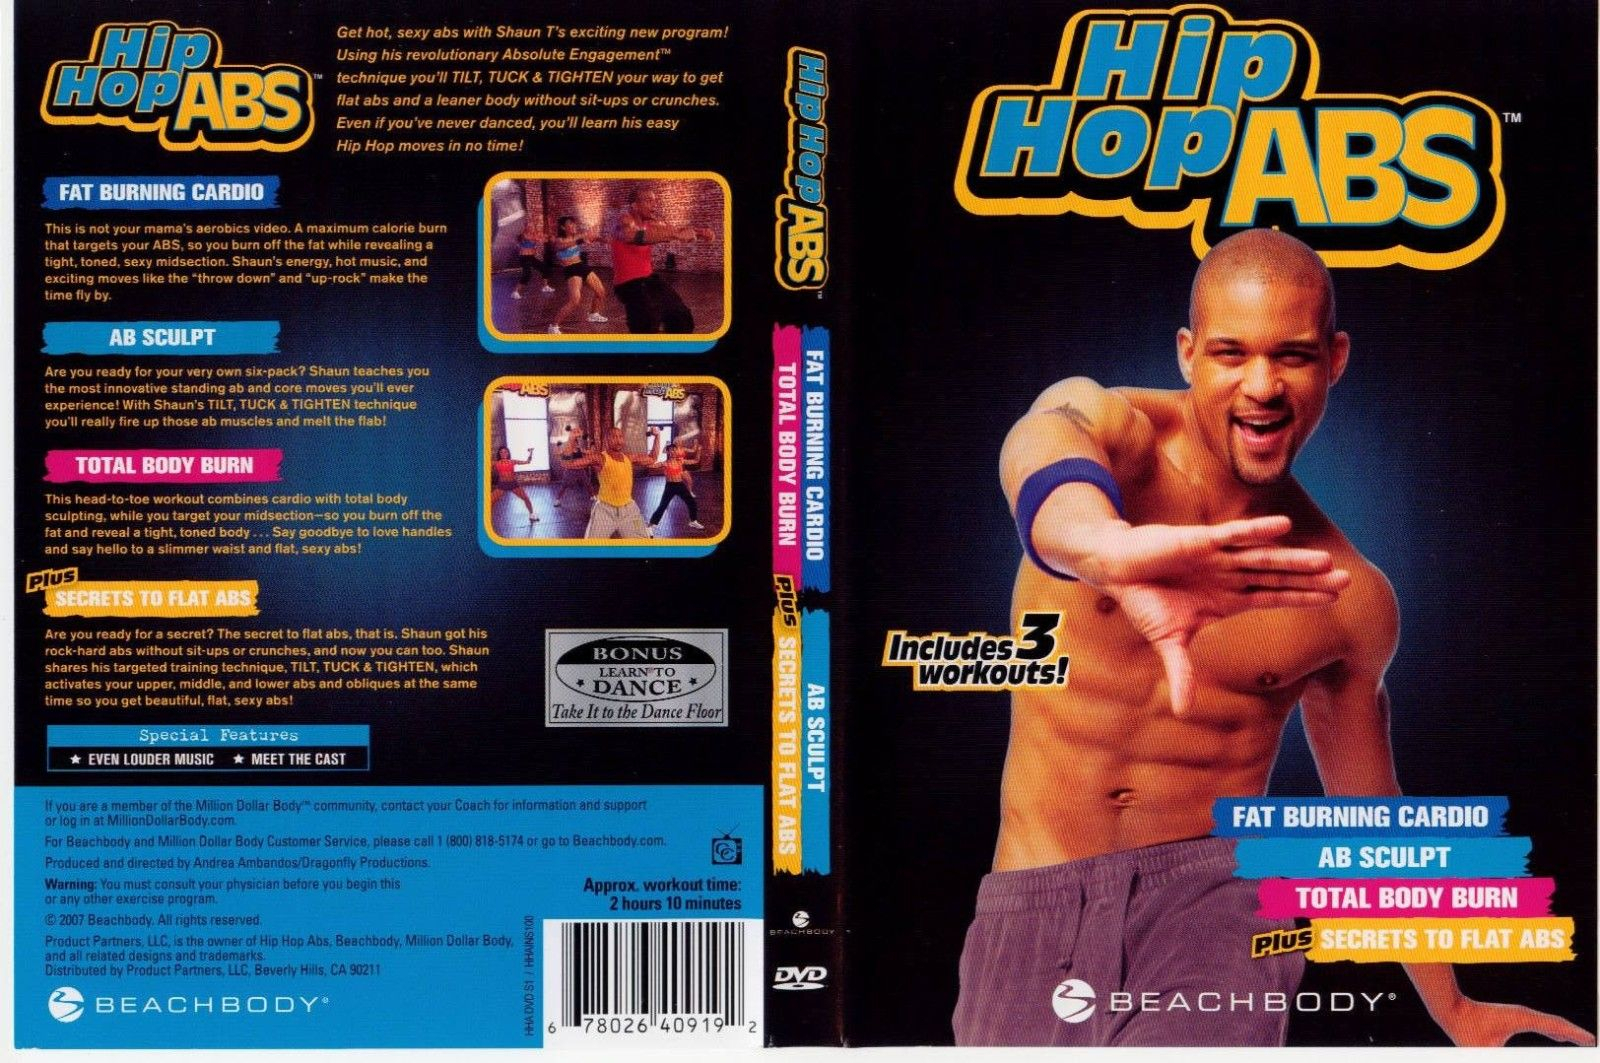 Pin By Keithgaston On Hip Hop Abs Schedule | Great Ab for Hip Hop Abs Calendar